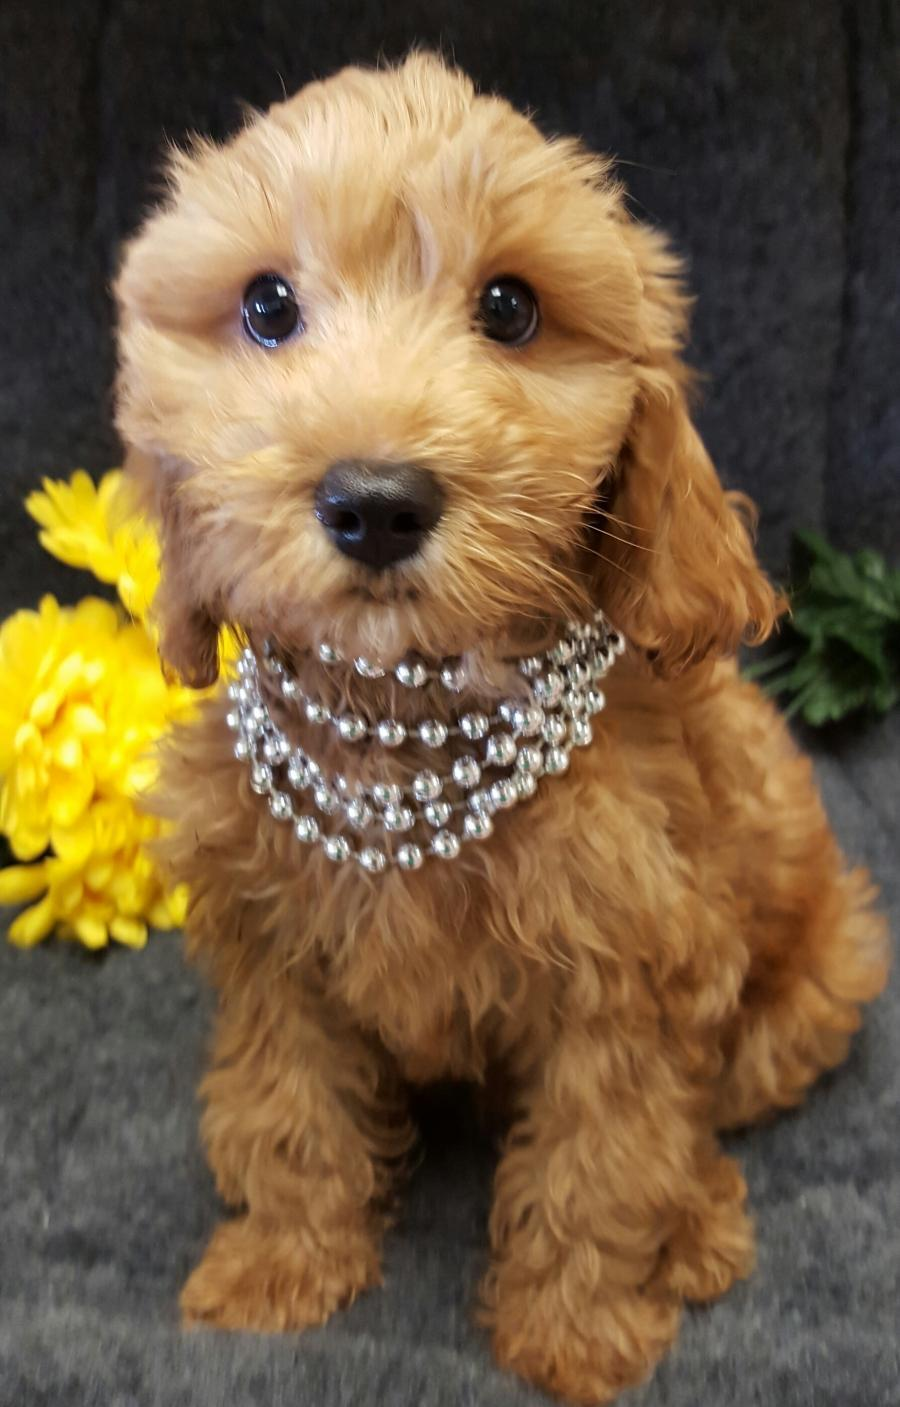 Cockapoo - Your pet store in Newmarket